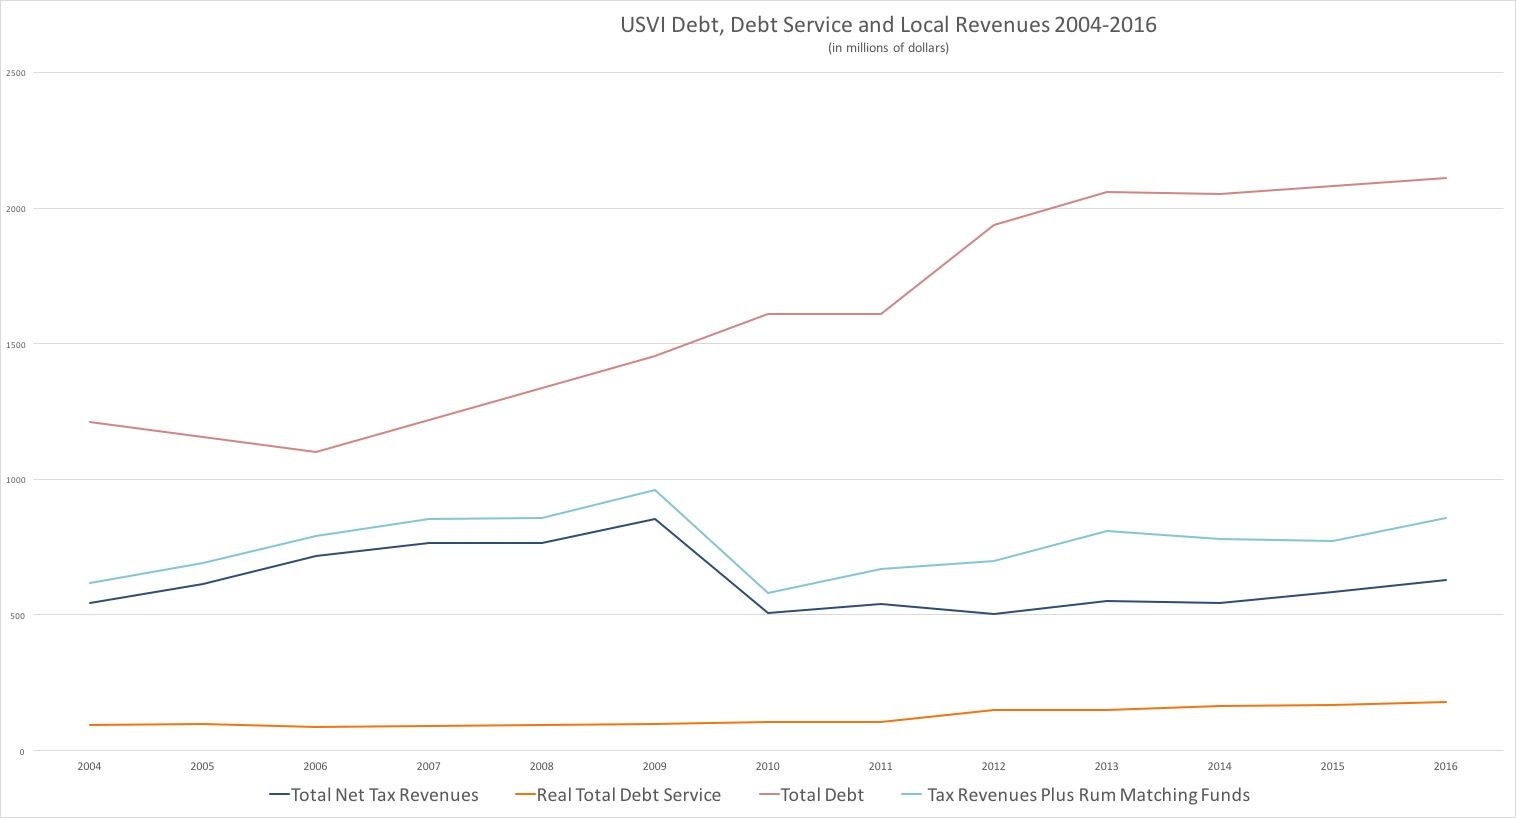 USVI Debt, Debt Service and Local Revenues, 2004-2016. Data compiled from V.I. government budget documentation and other sources by Bill Kossler.